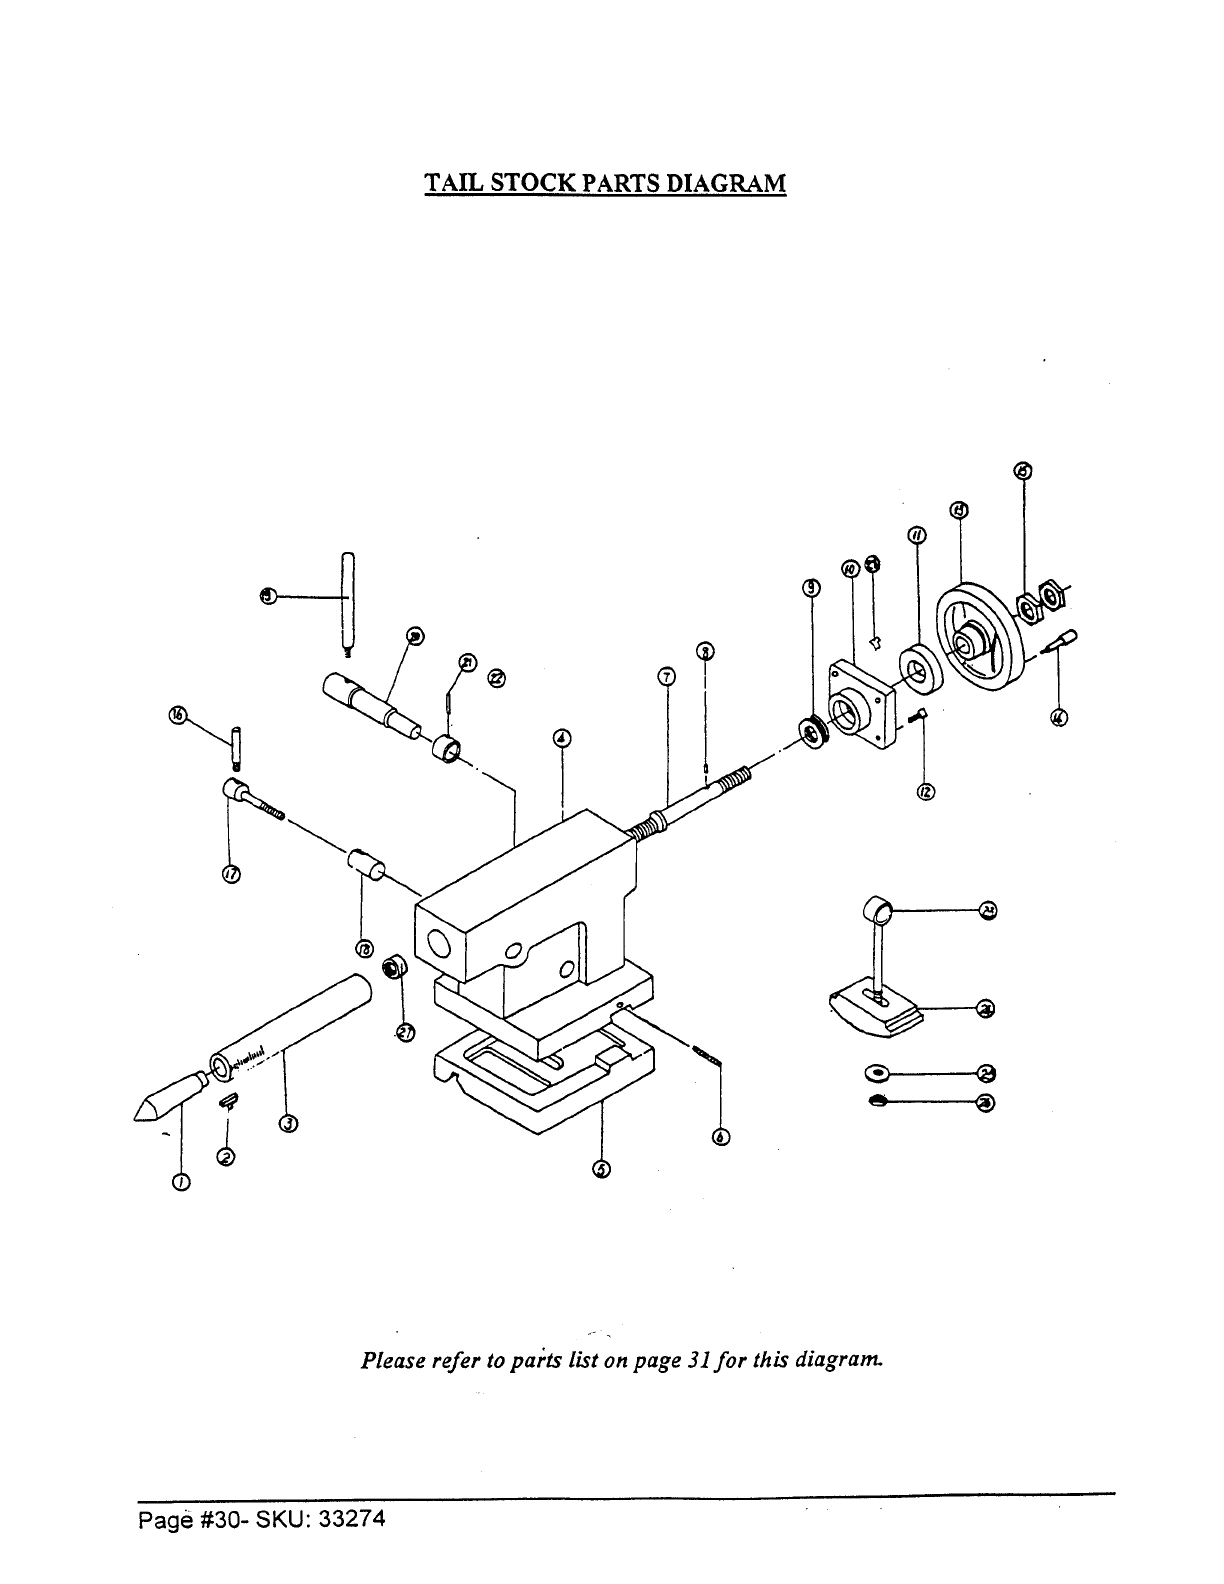 Page 30 of Harbor Freight Tools Lathe 33274 User Guide